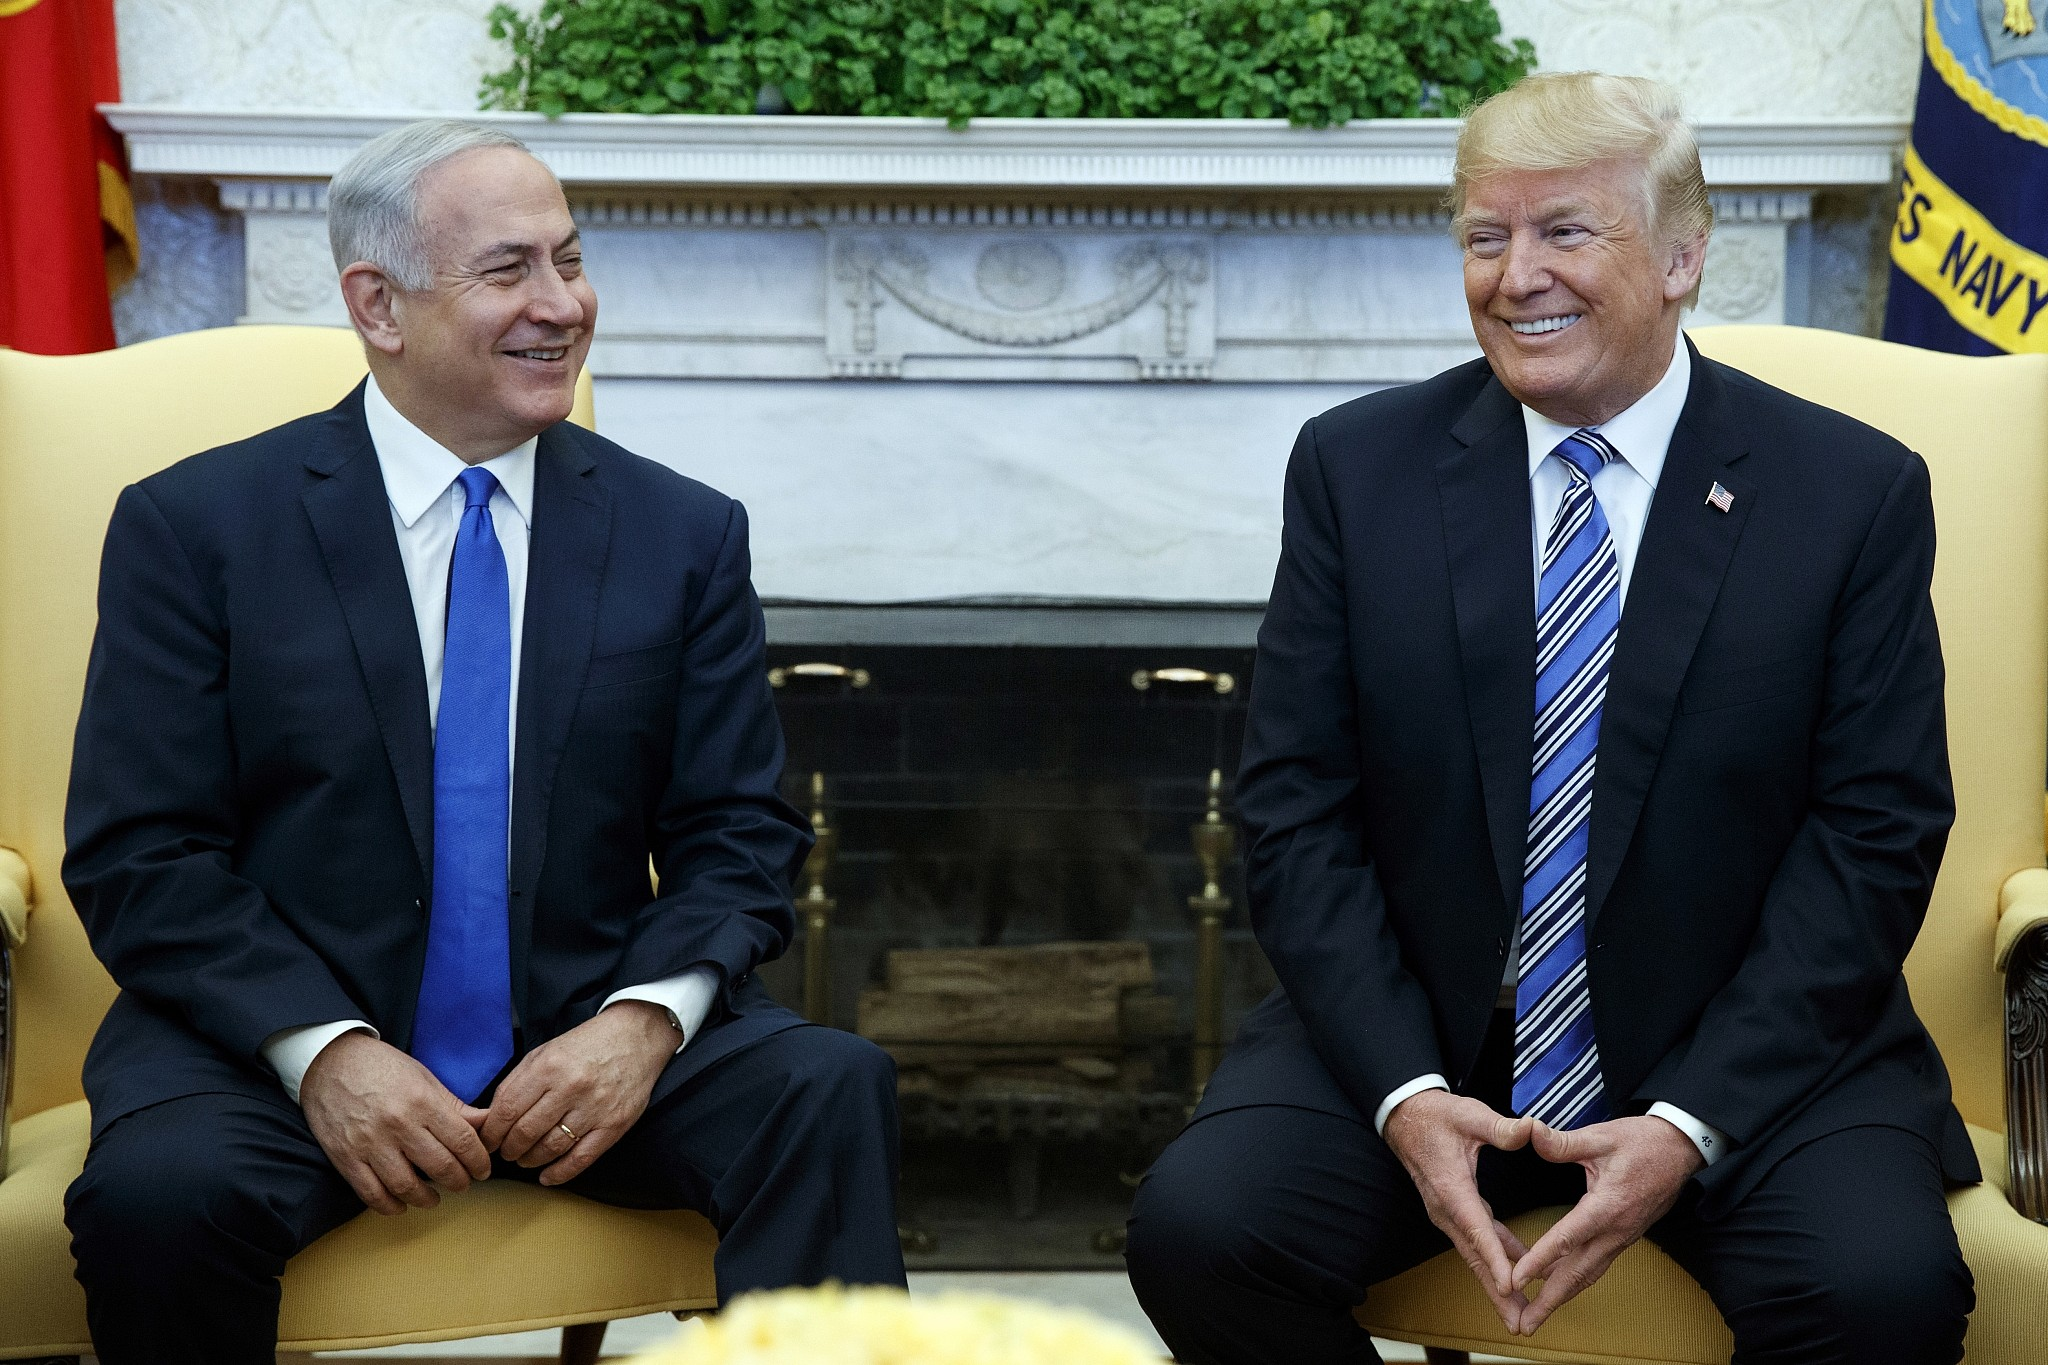 Trump decides to recognize Israel's Claim To Golan Heights